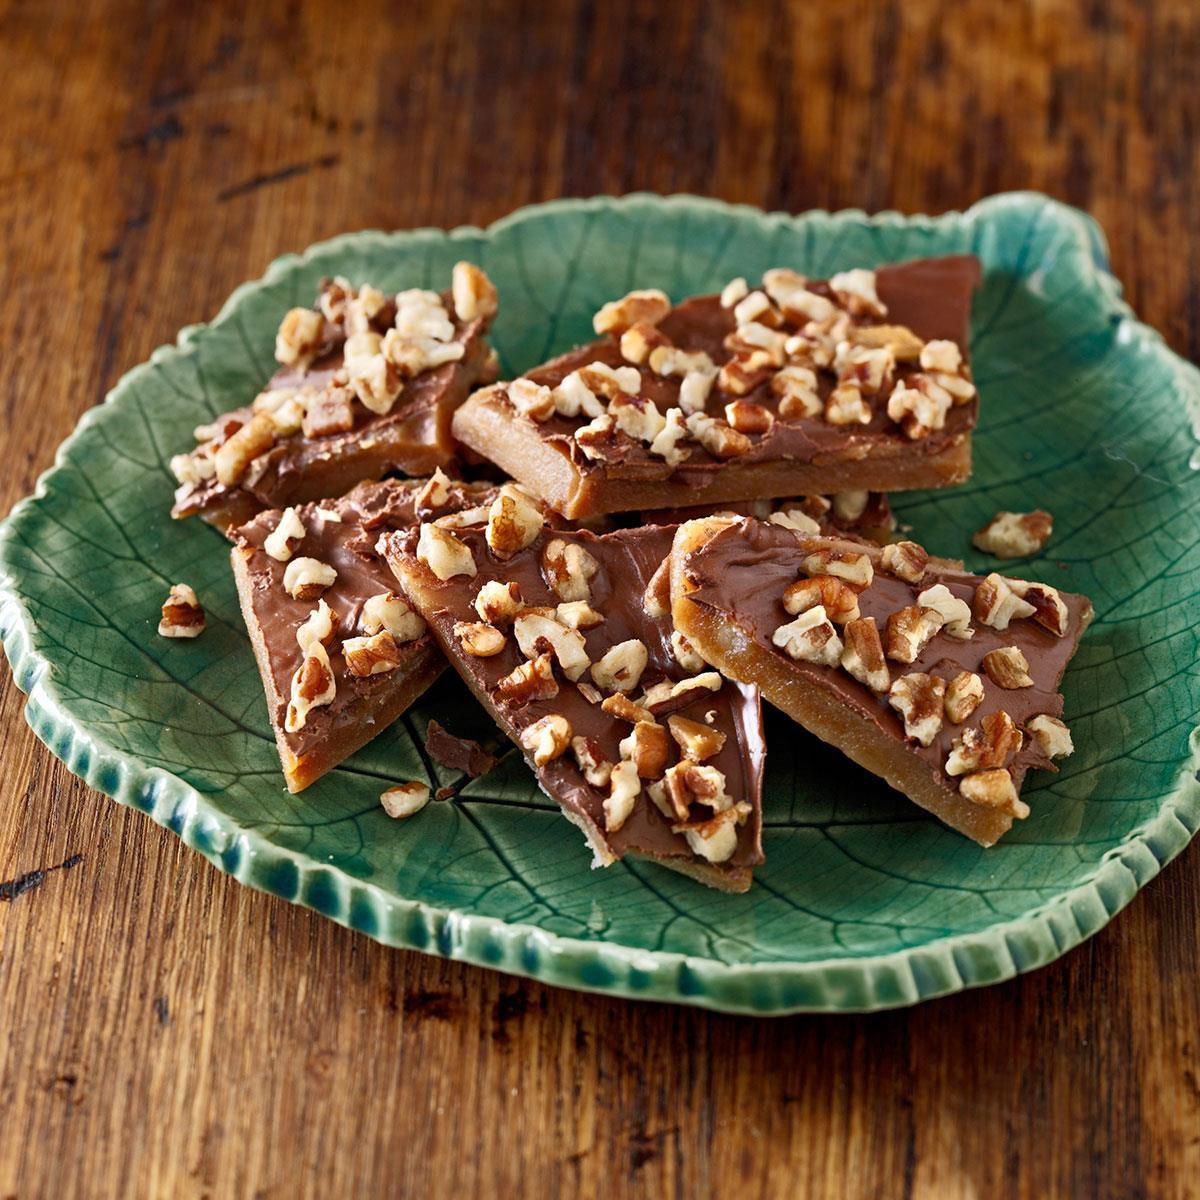 Toffee candy